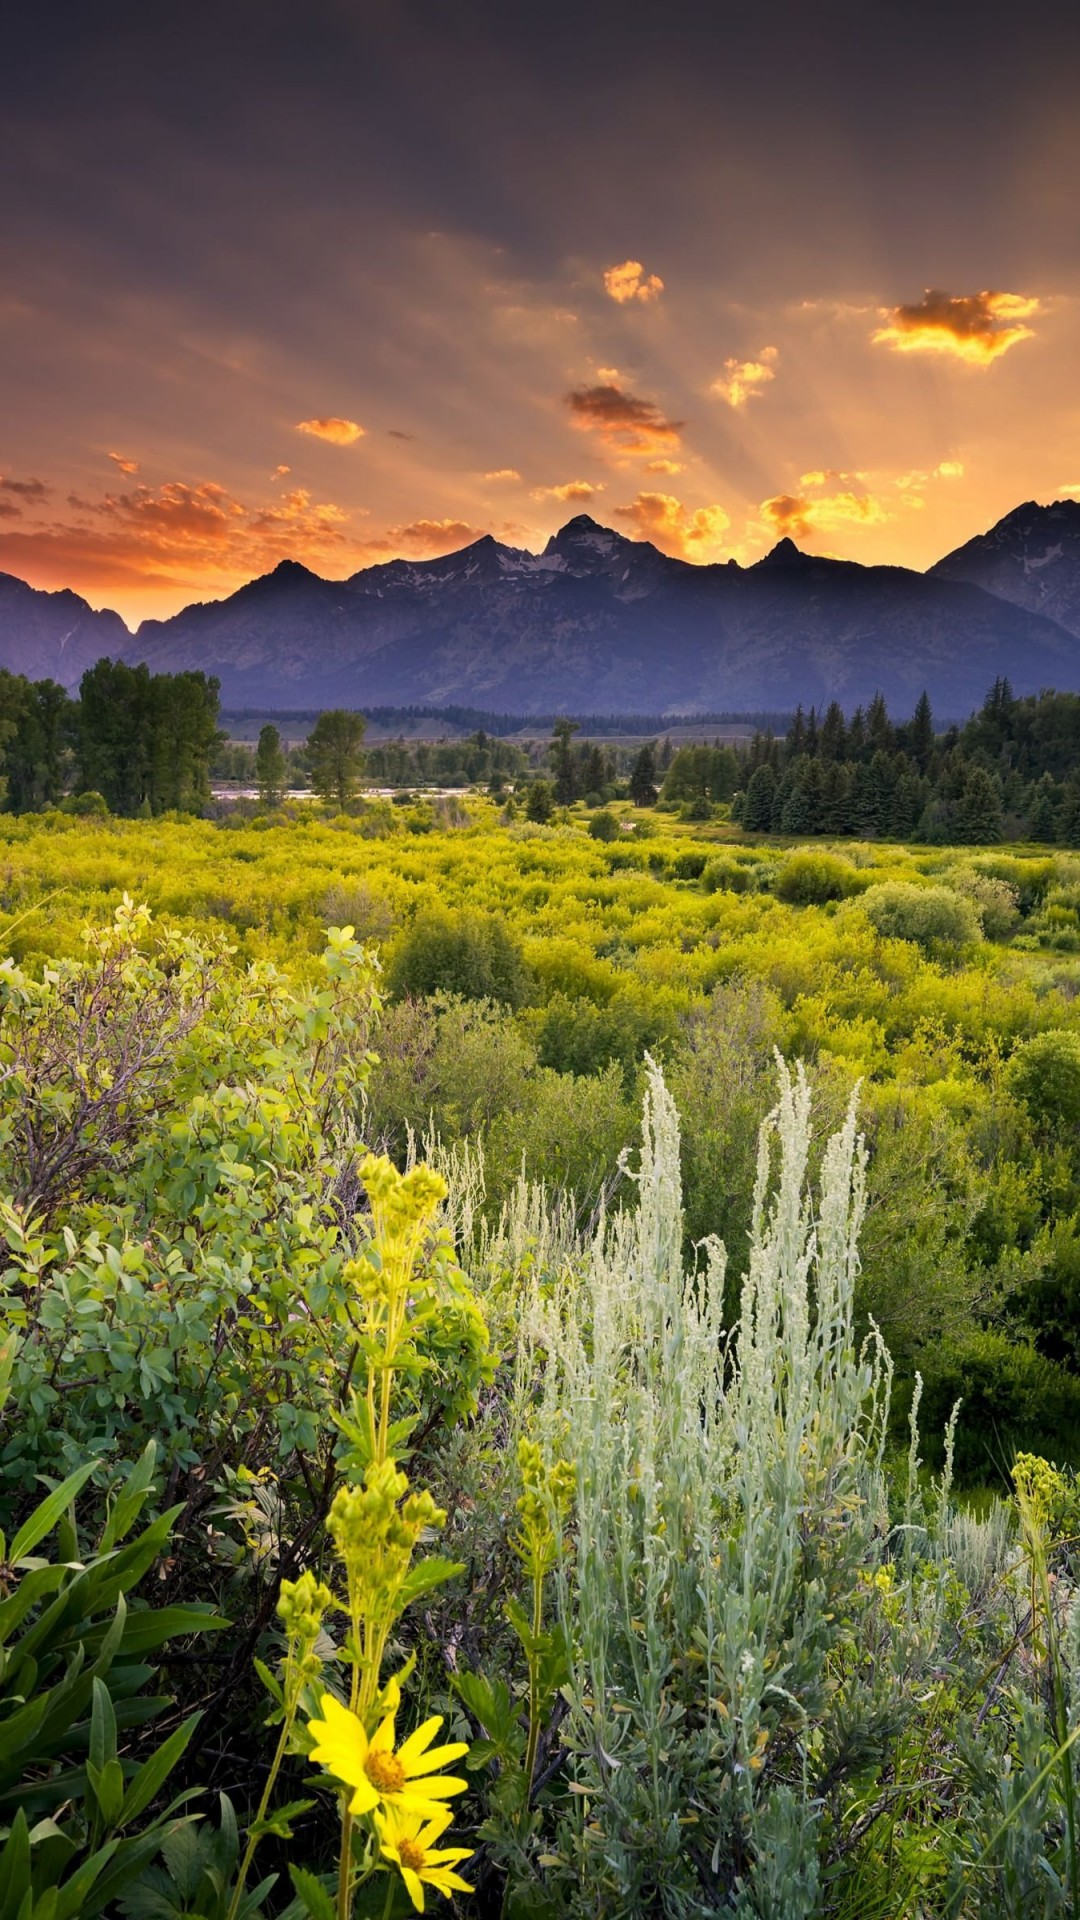 Sunset in Grand Teton National Park Wallpaper for SONY Xperia Z3